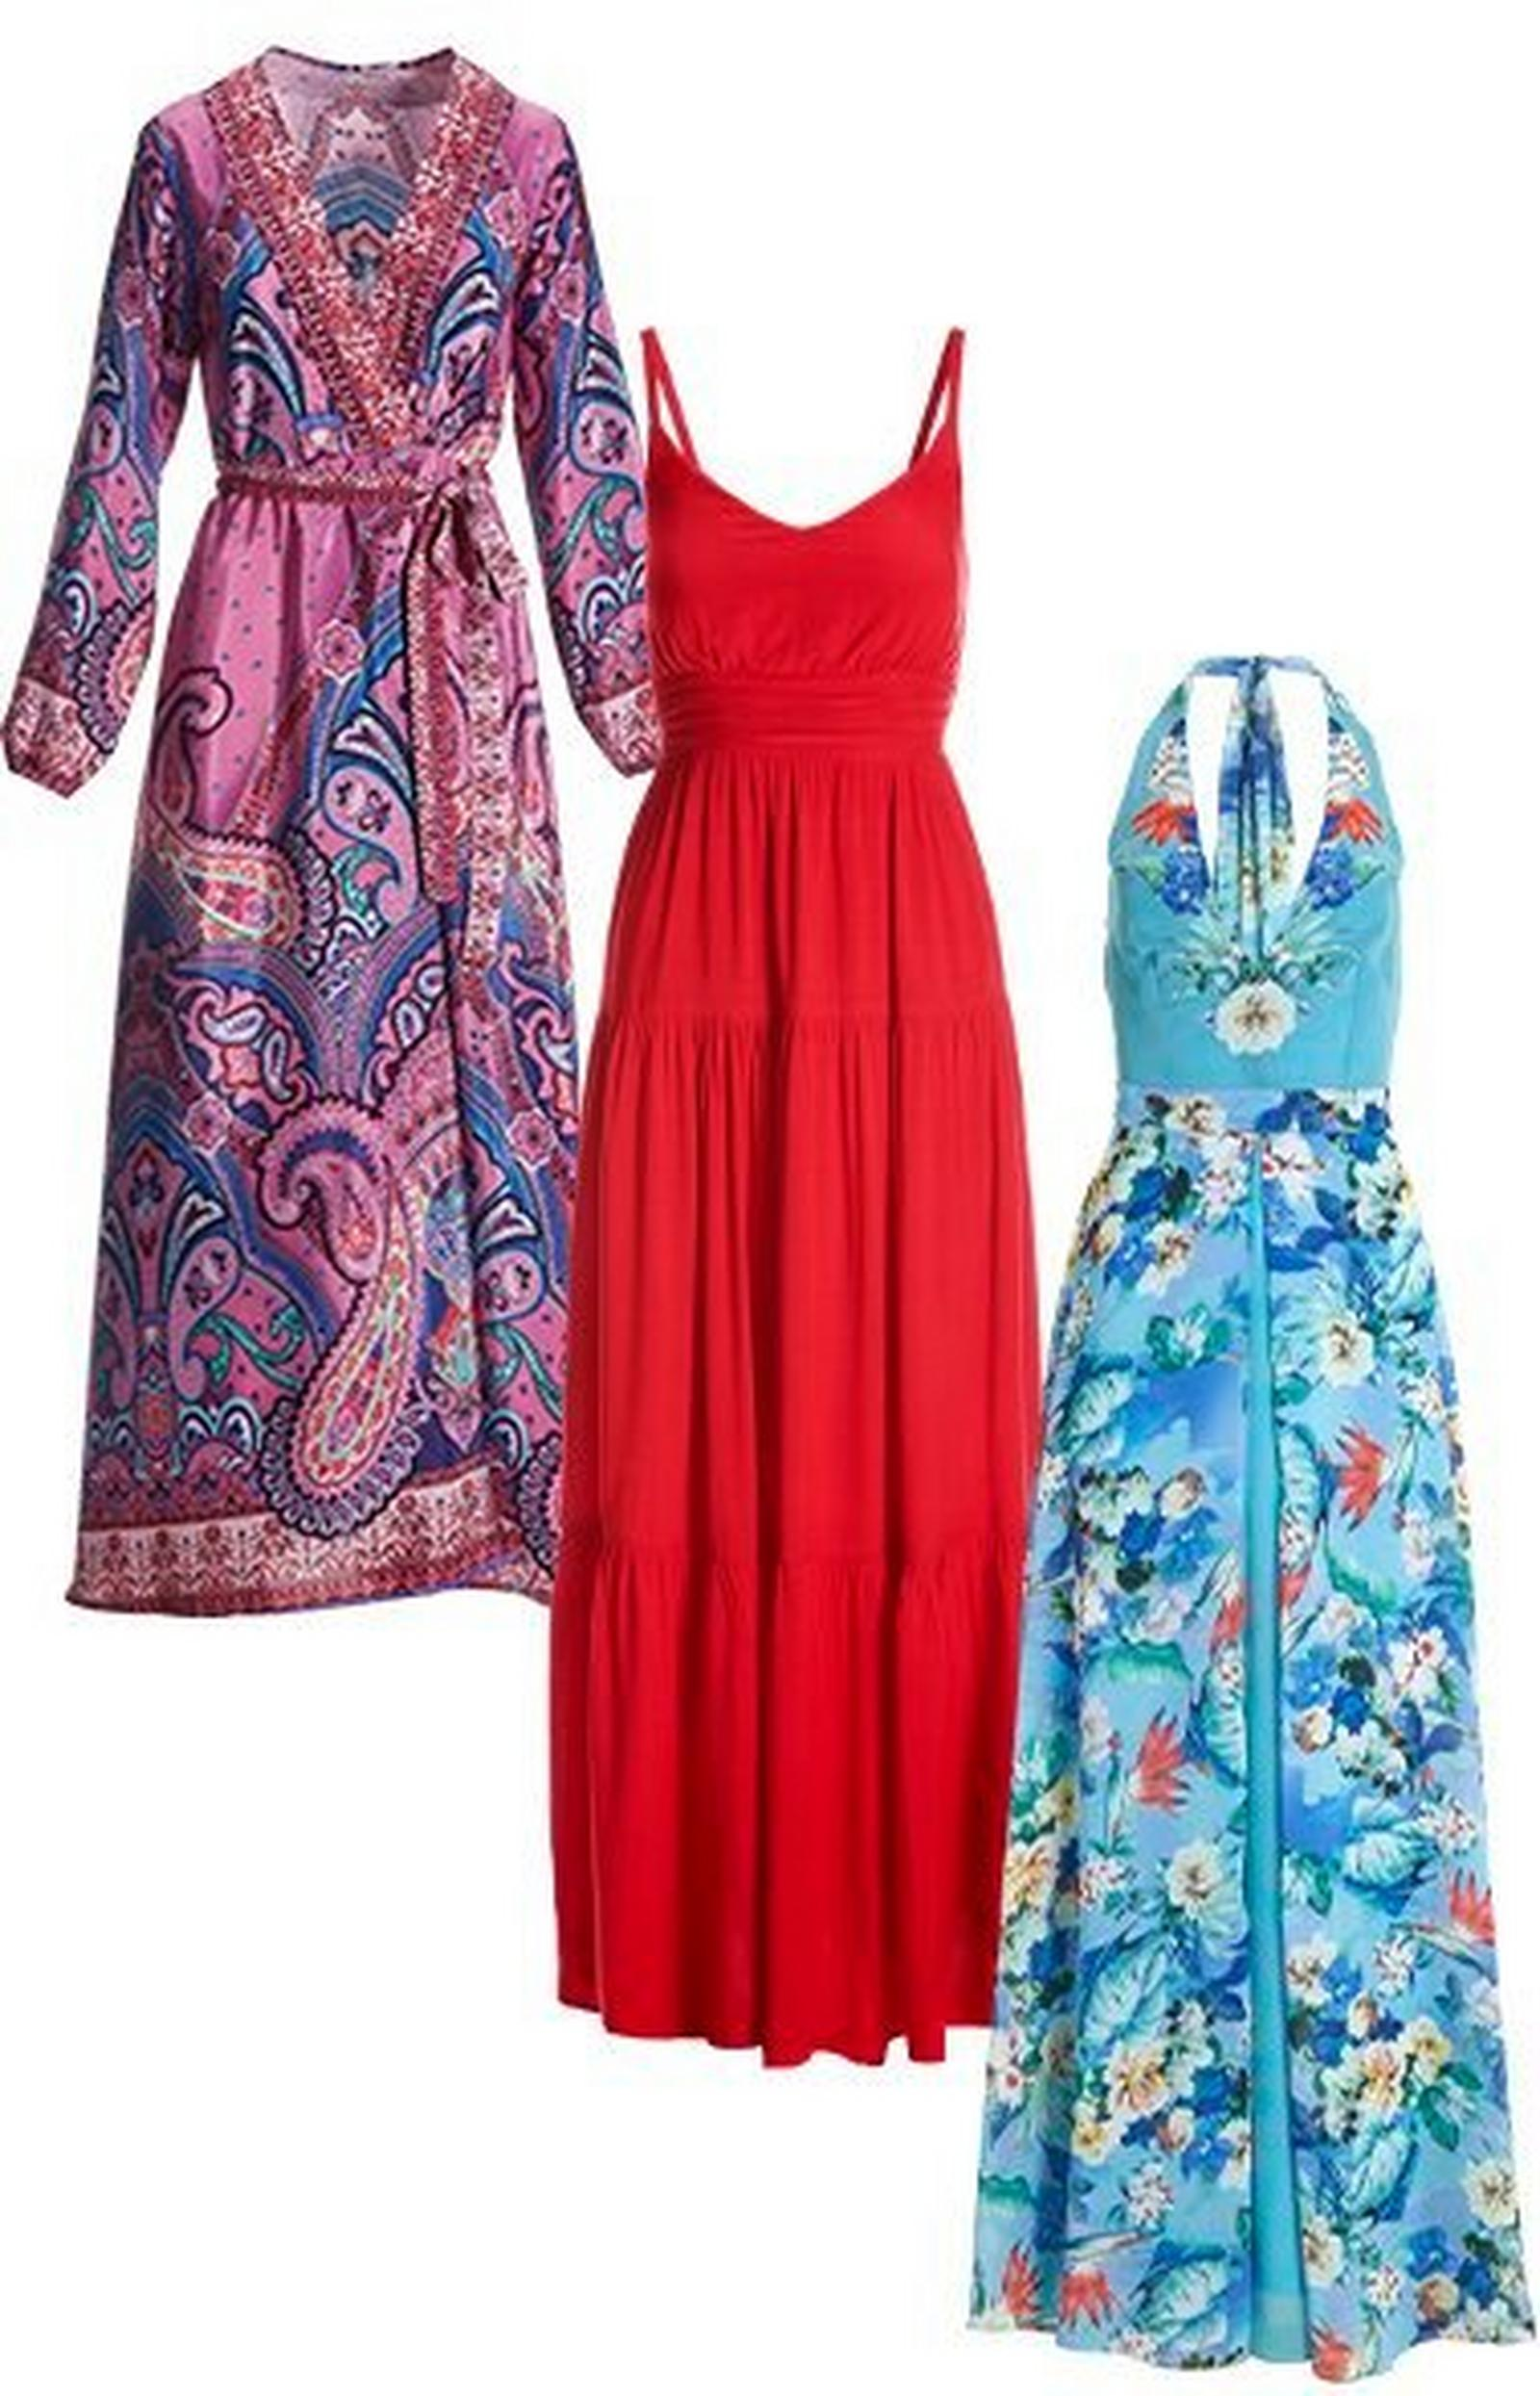 multicolored paisley print long-sleeve wrap maxi dress, red sleeveless tiered maxi dress, and light blue halter-neck dress with a floral overlay.